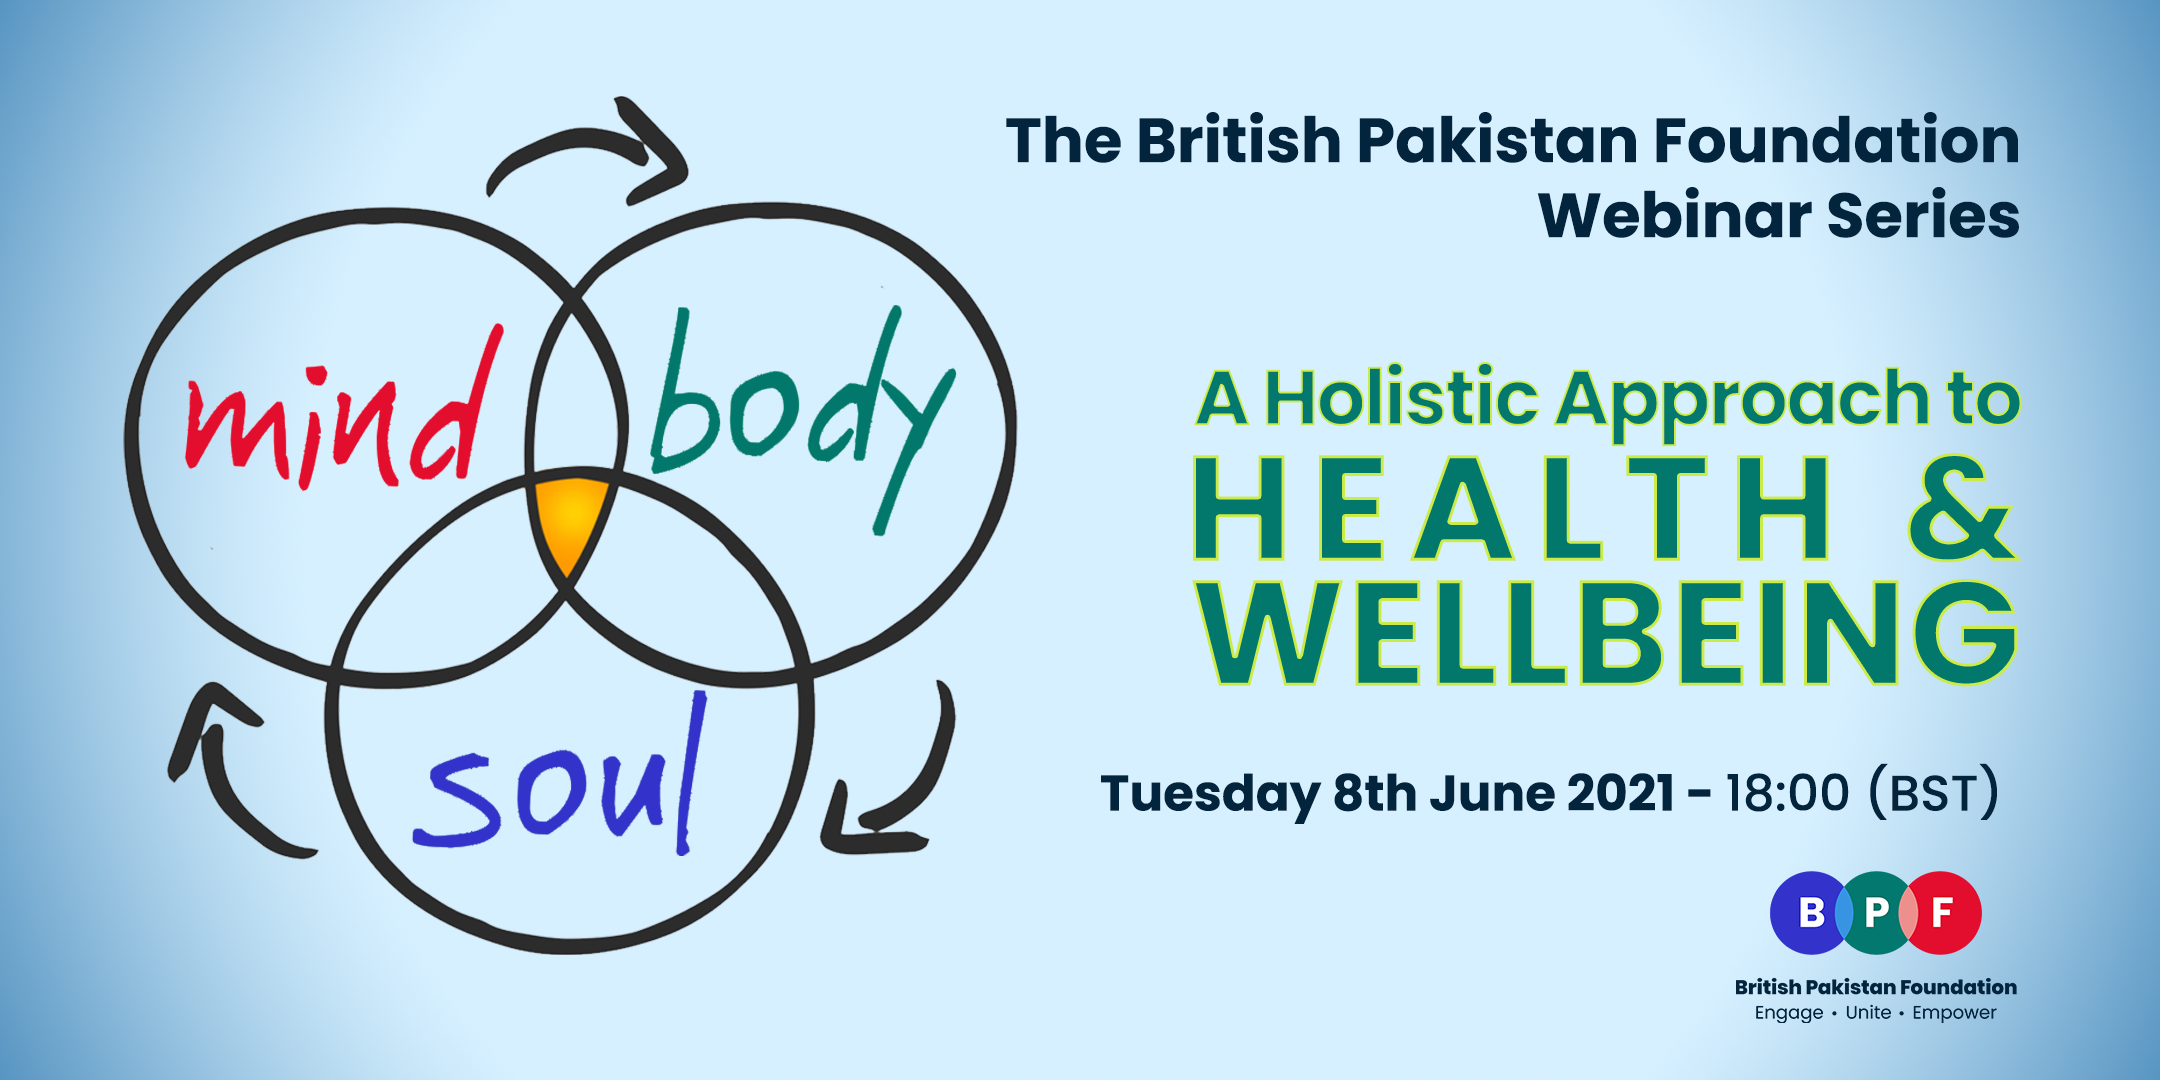 A Holistic Approach to Health & Wellbeing